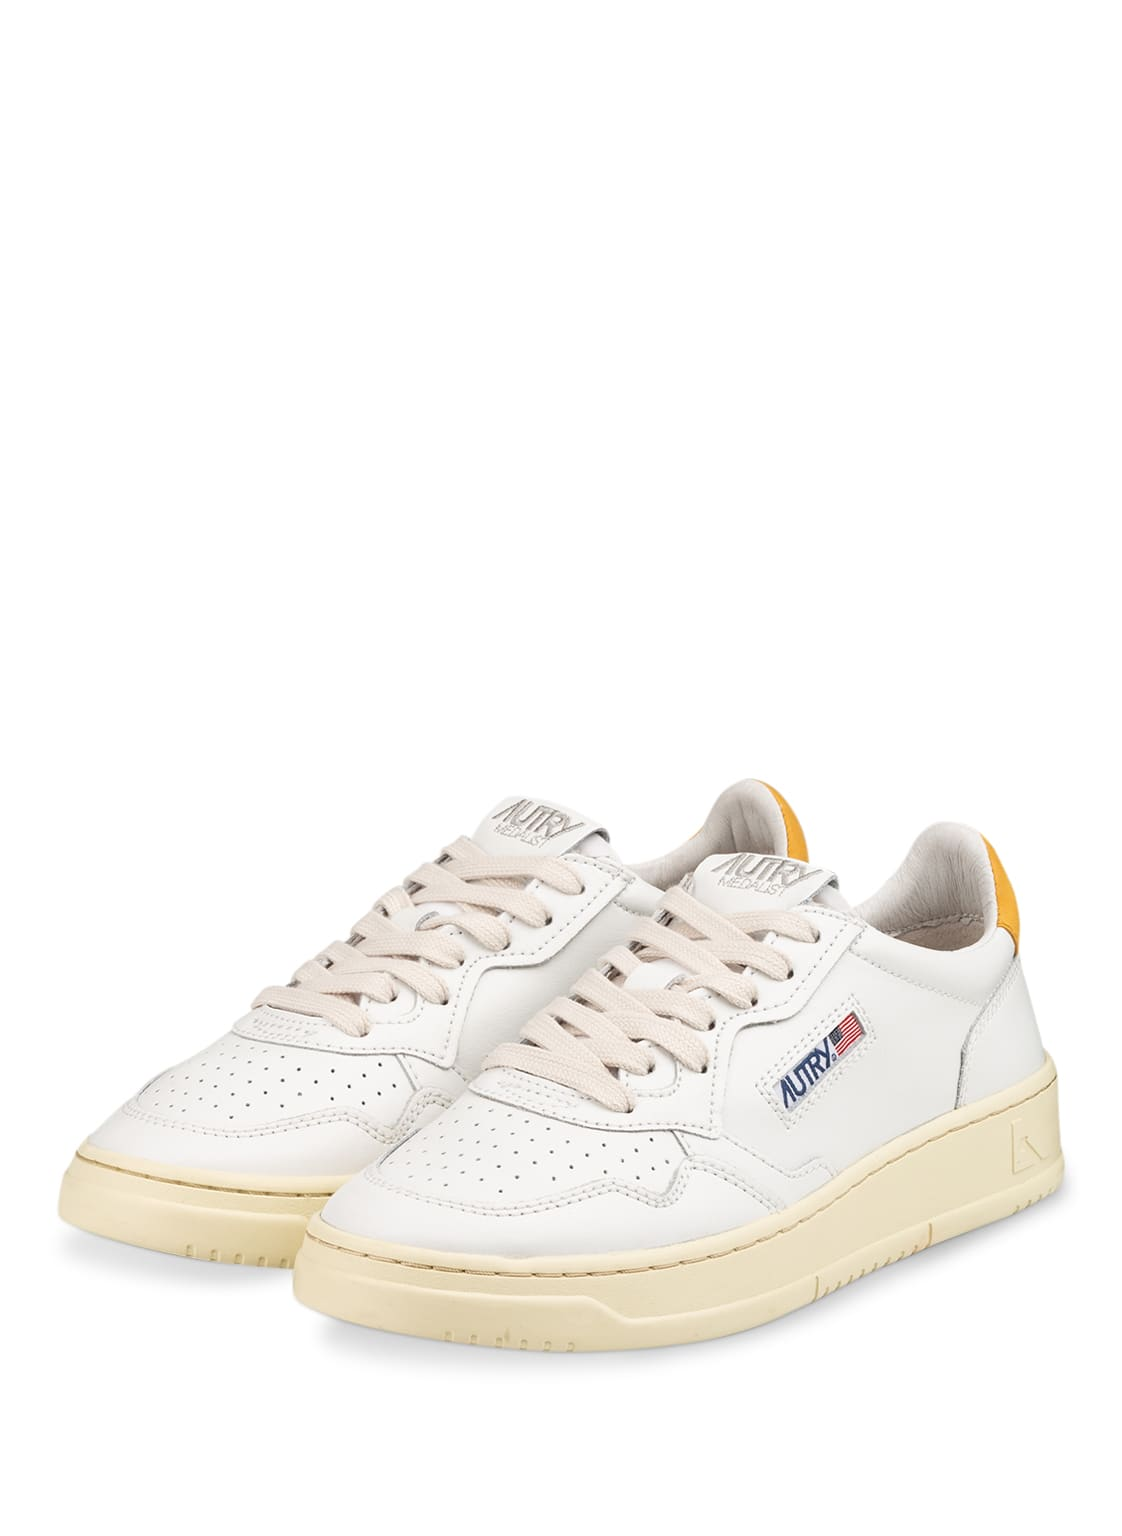 Image of Autry Plateau-Sneaker weiss